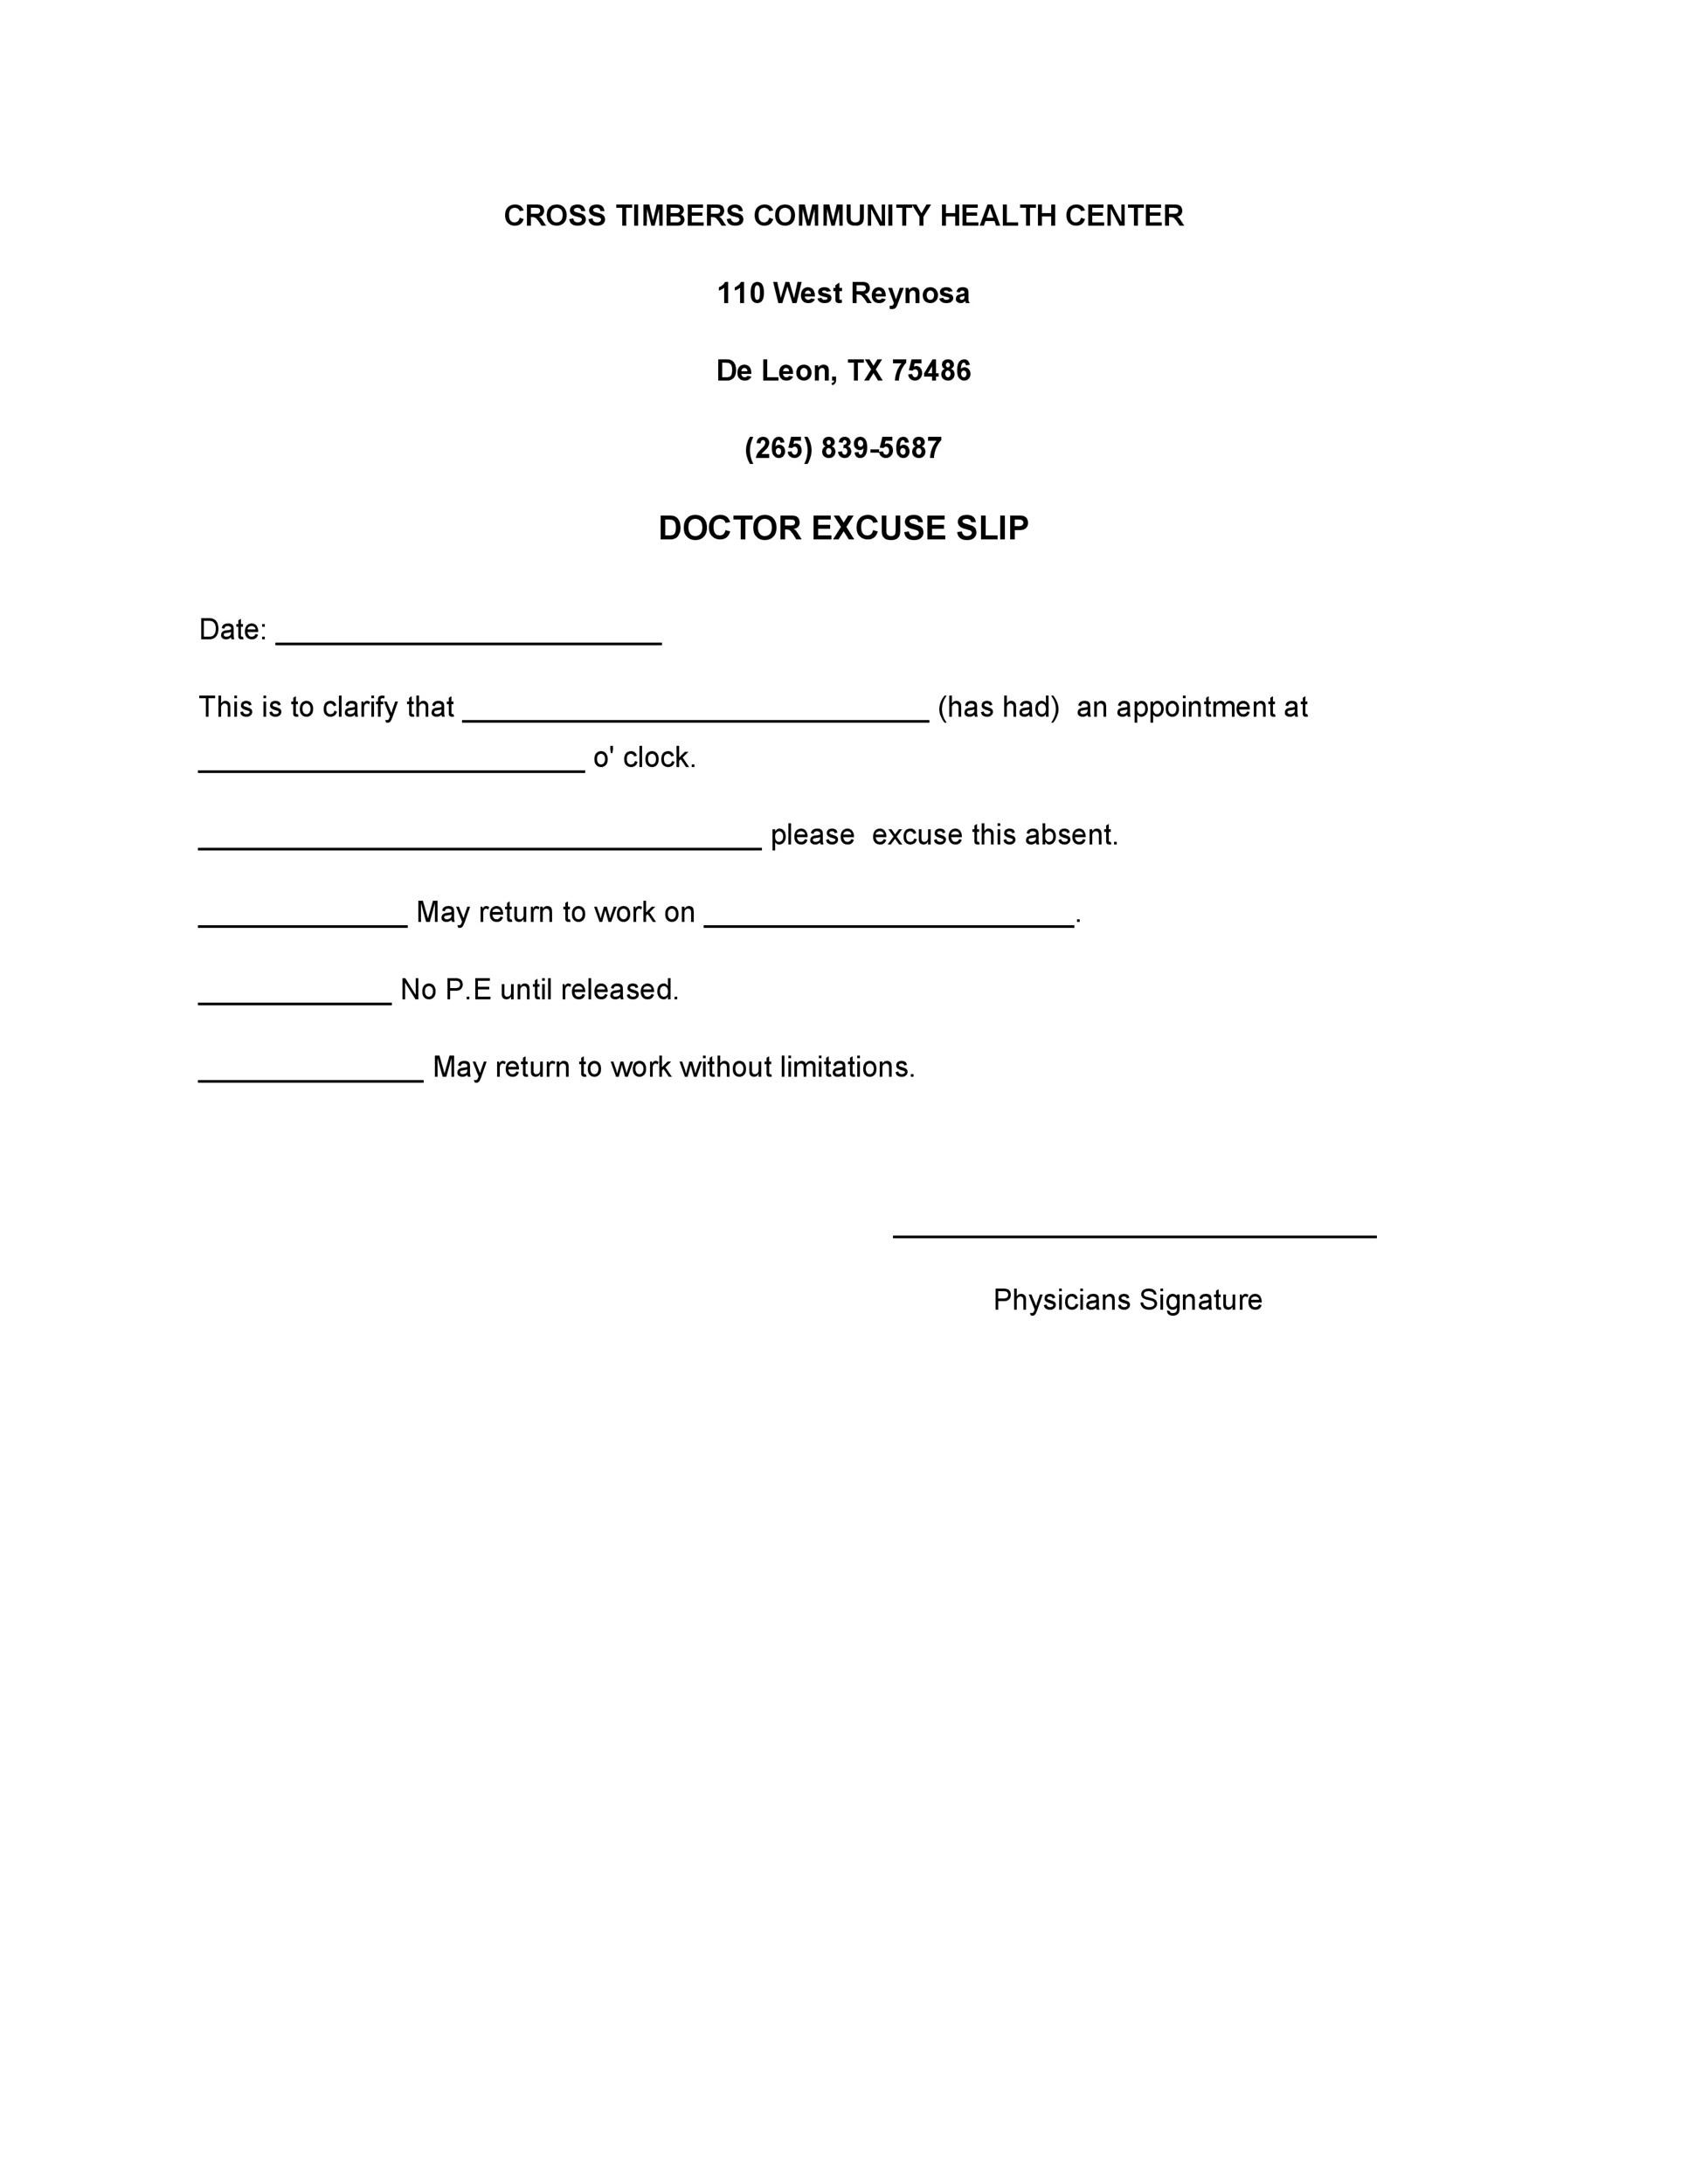 25+ Free Doctor Note / Excuse Templates ᐅ Template Lab